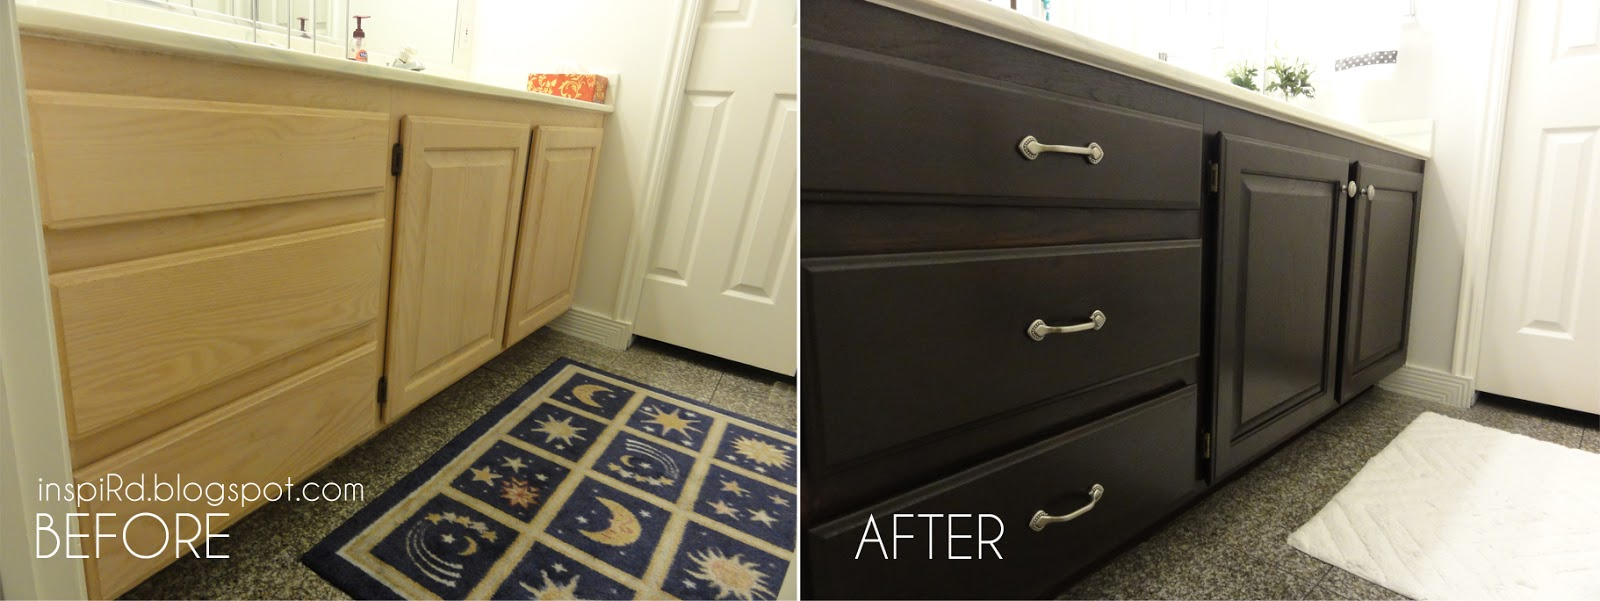 inspird staining bathroom cabinets my diy project